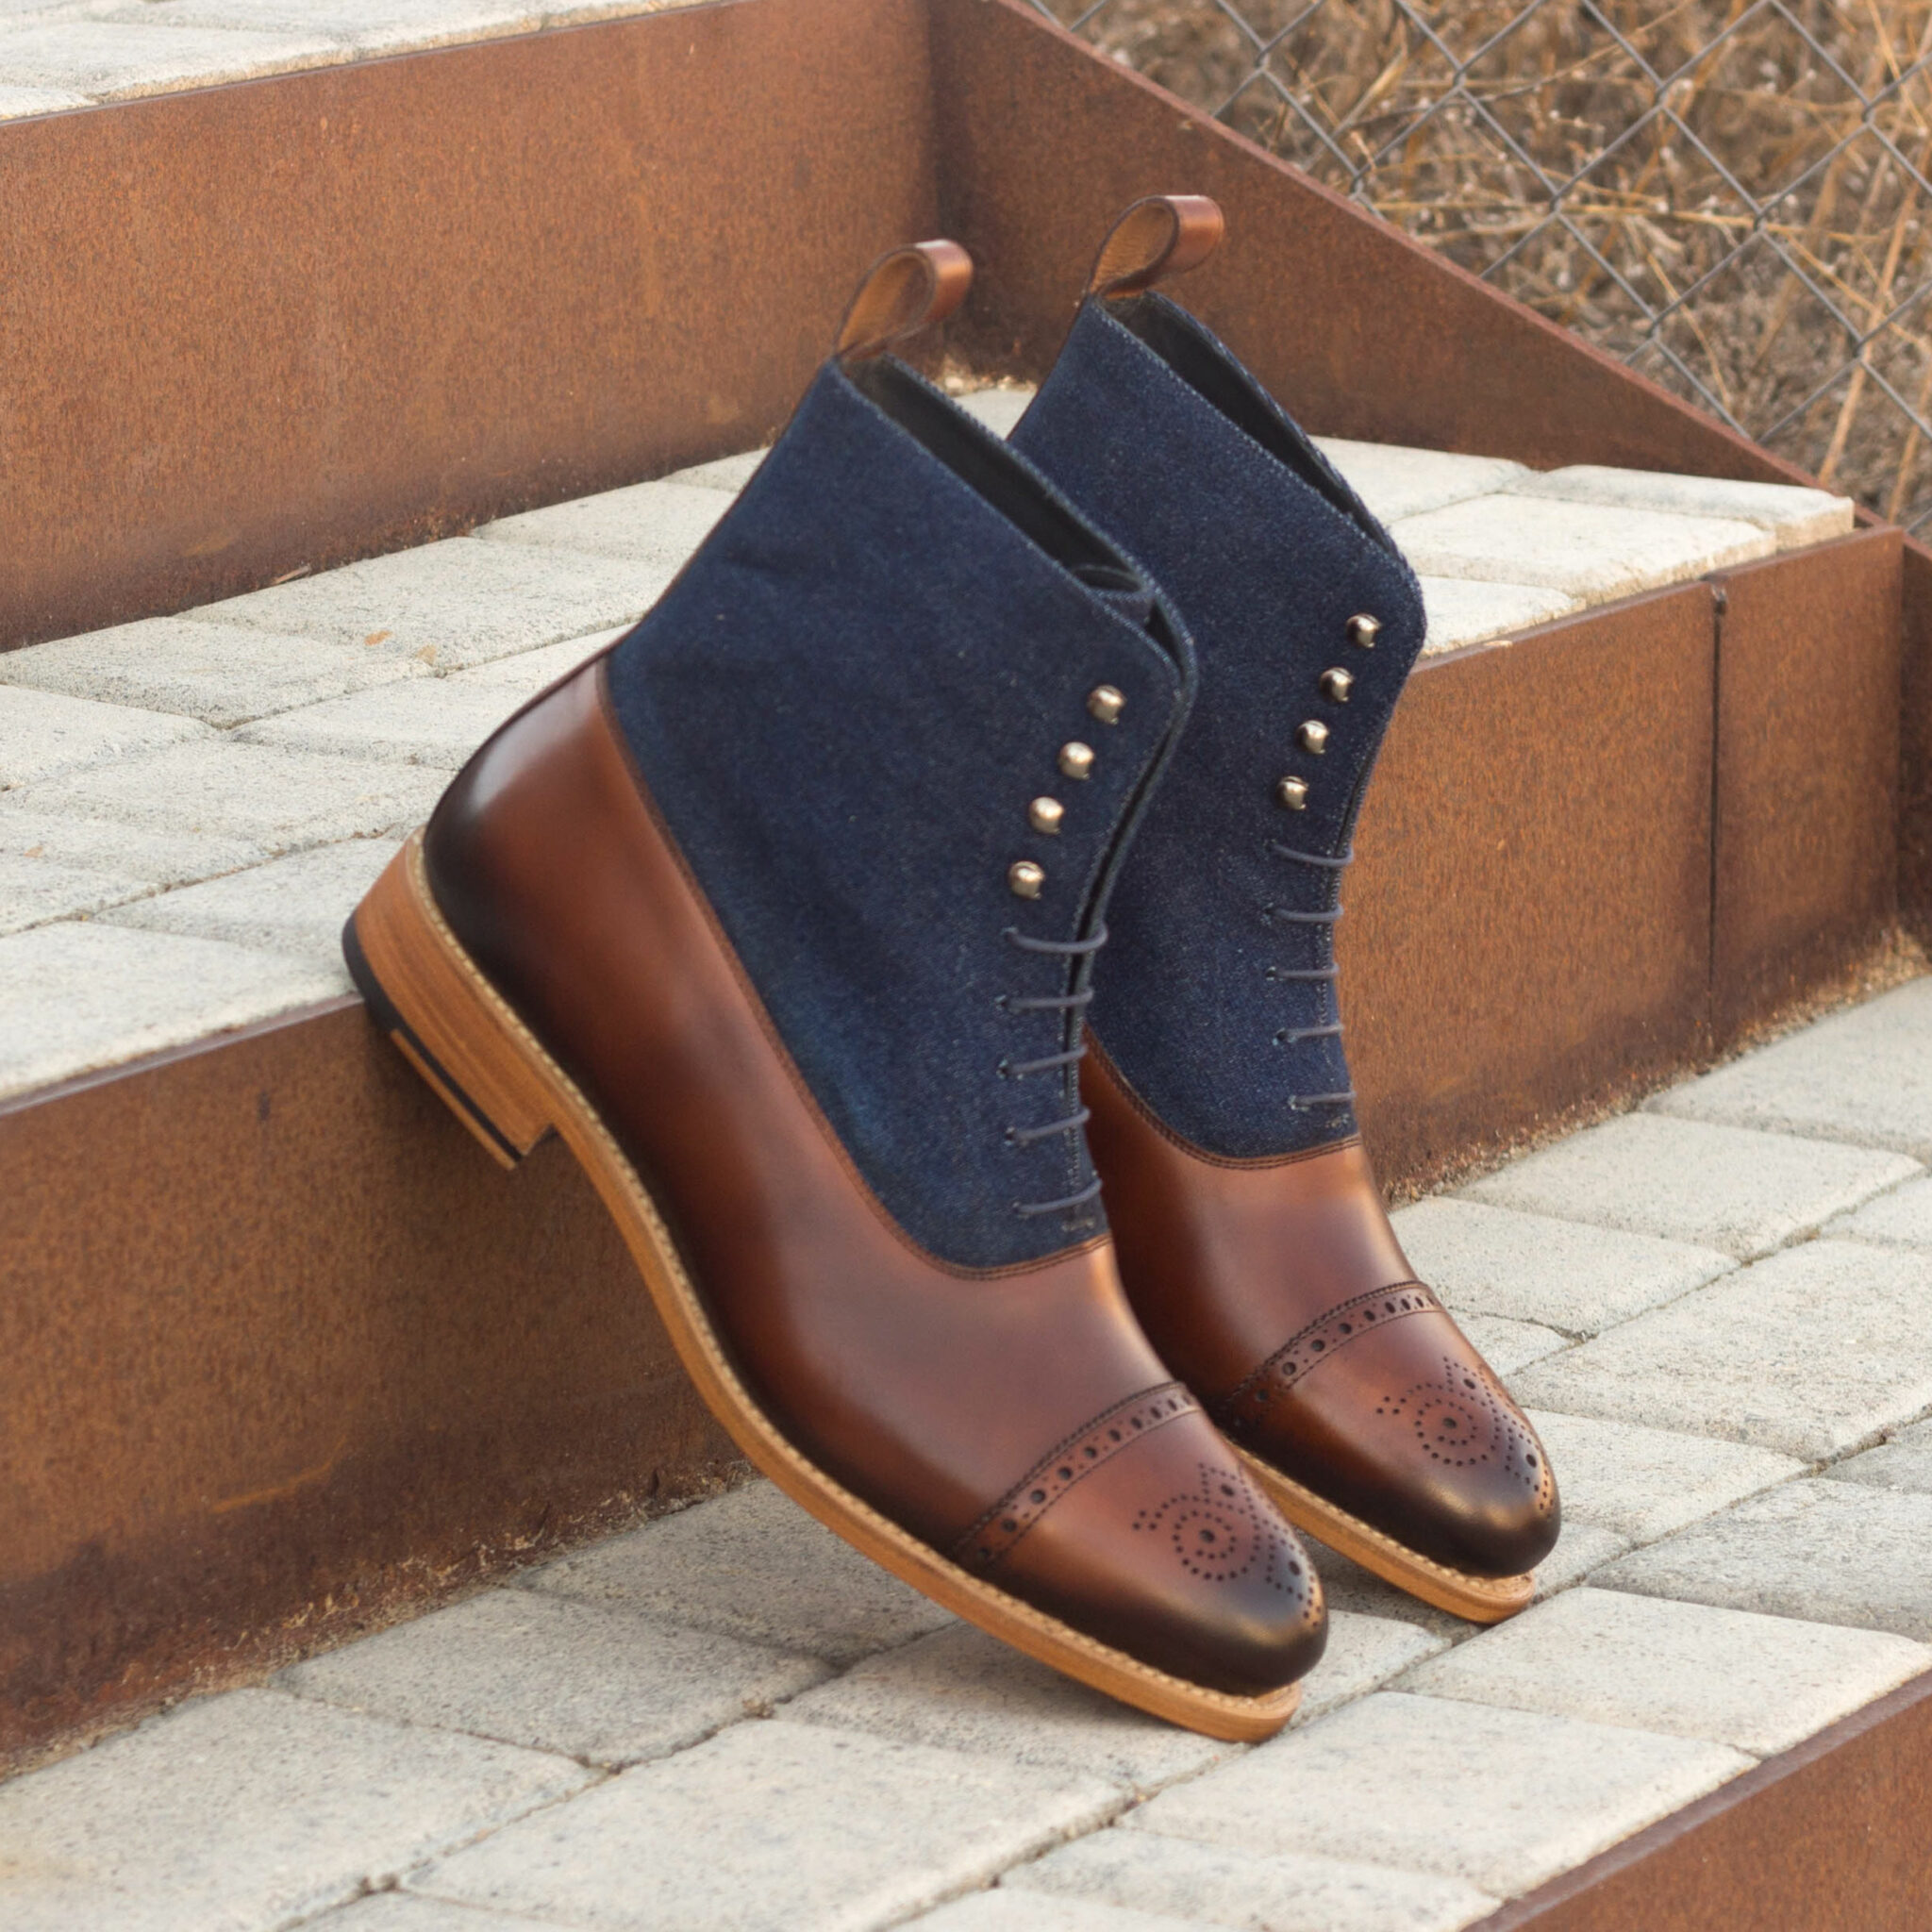 Balmoral boot jeans sartorial + med brown painted calf : 270€